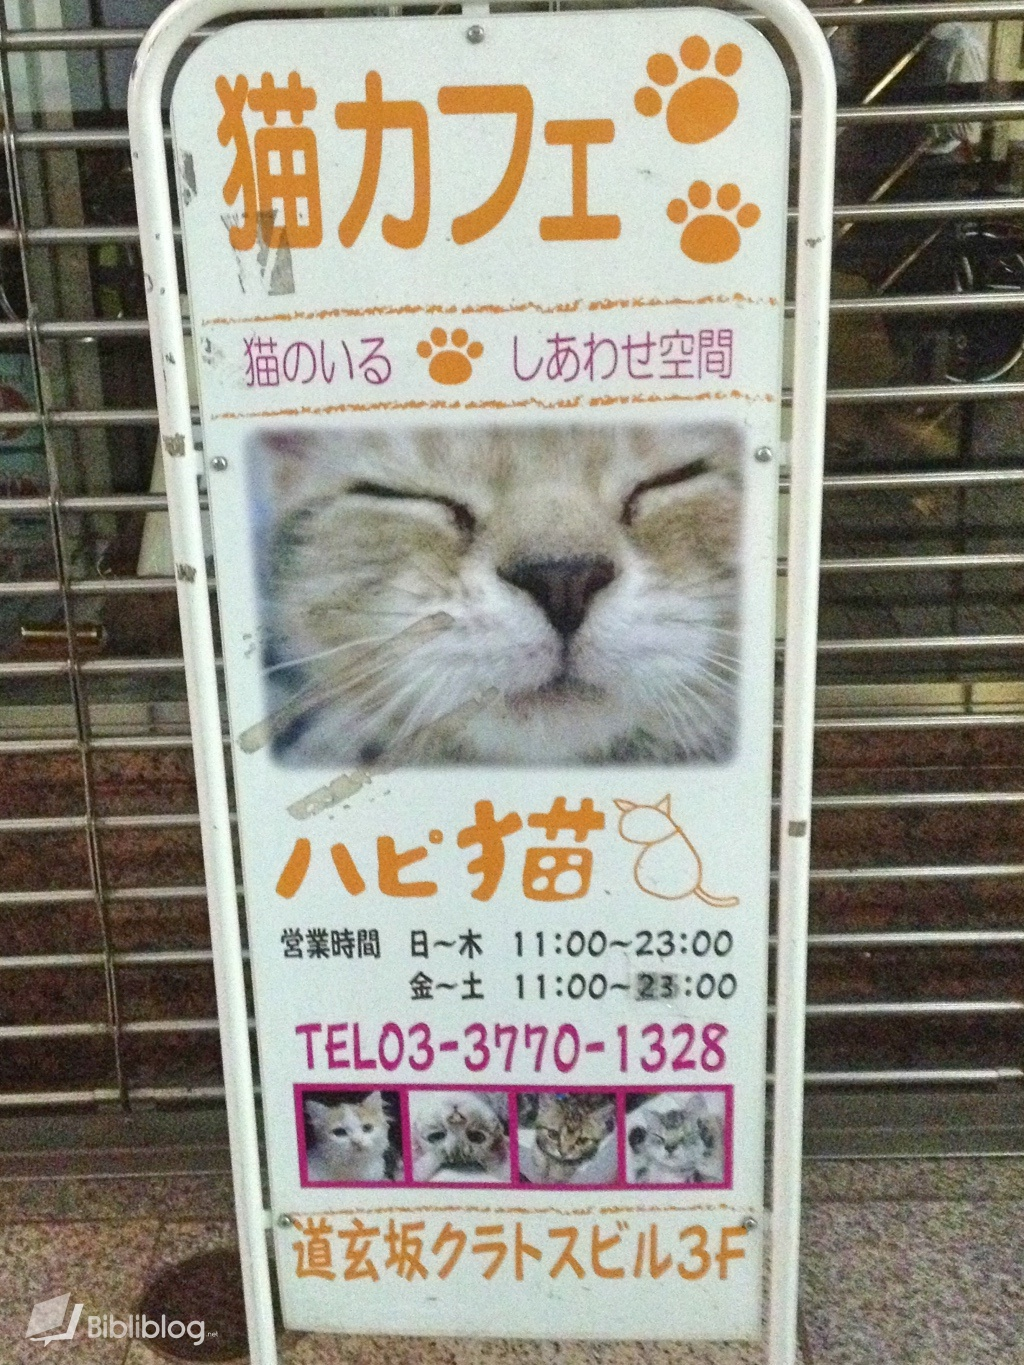 neko-bar Bar à chats au Japon